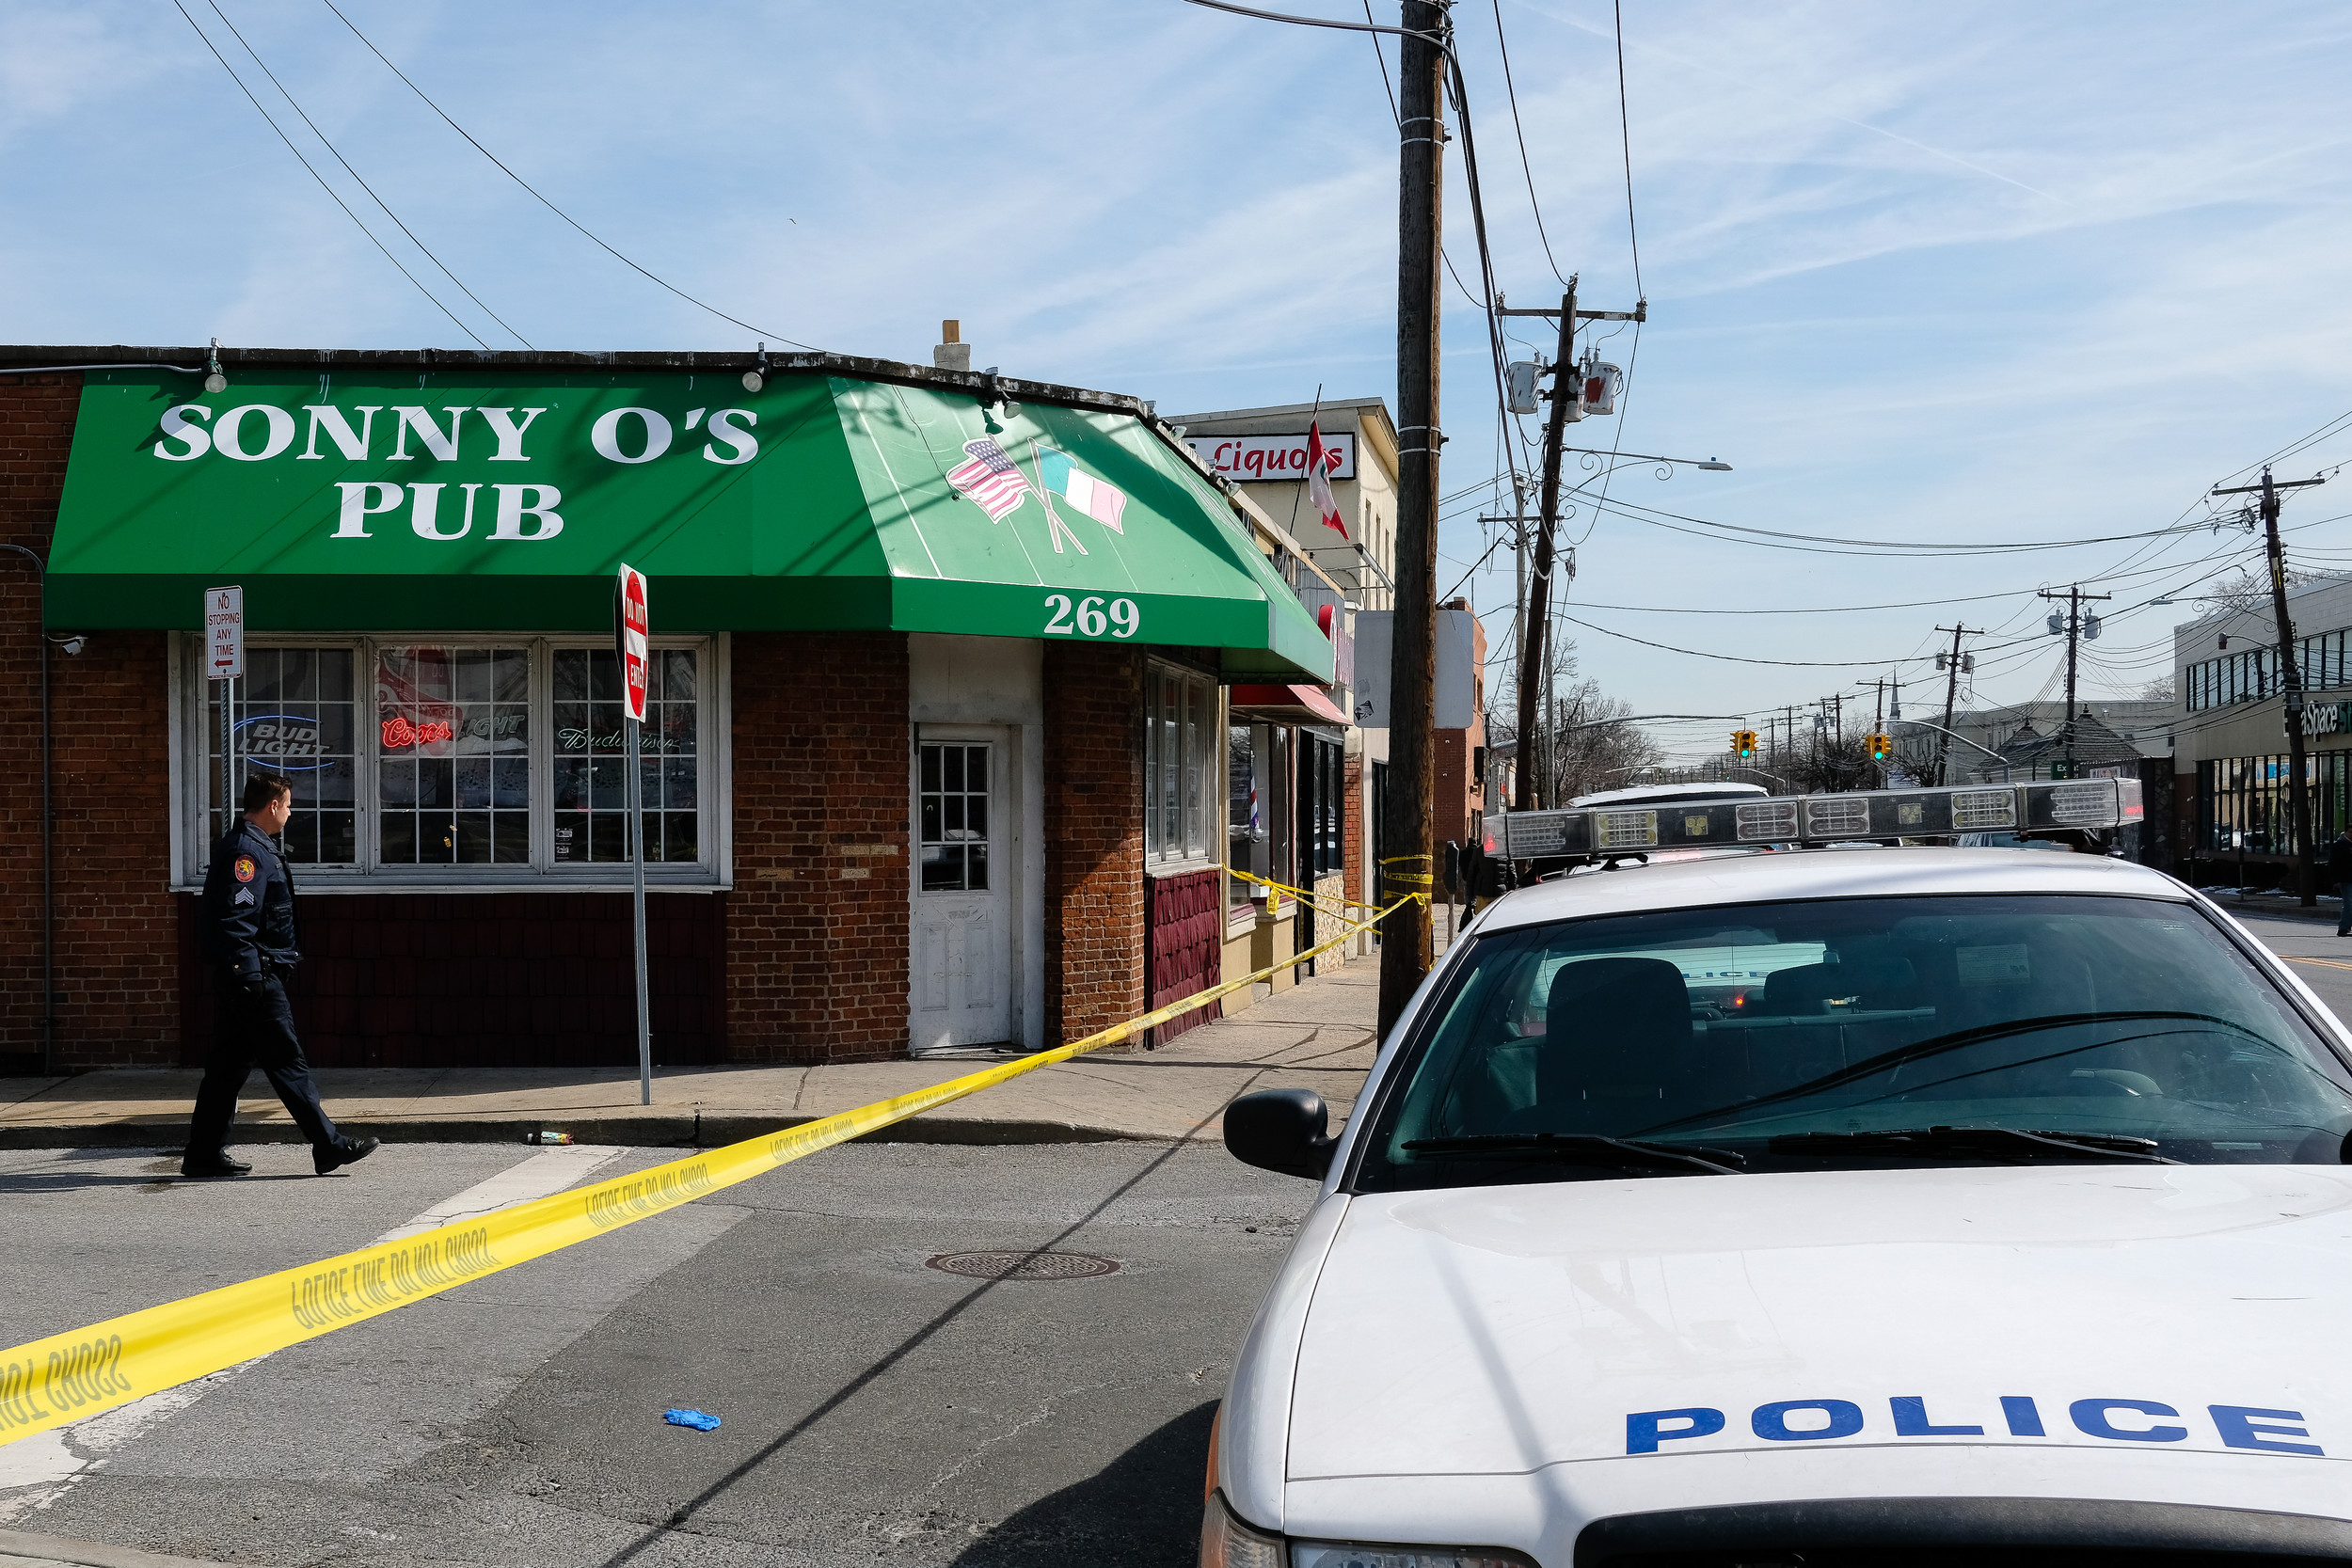 Nassau County police on the scene at Sonny O's Pub on March 13, where a man was shot and killed.